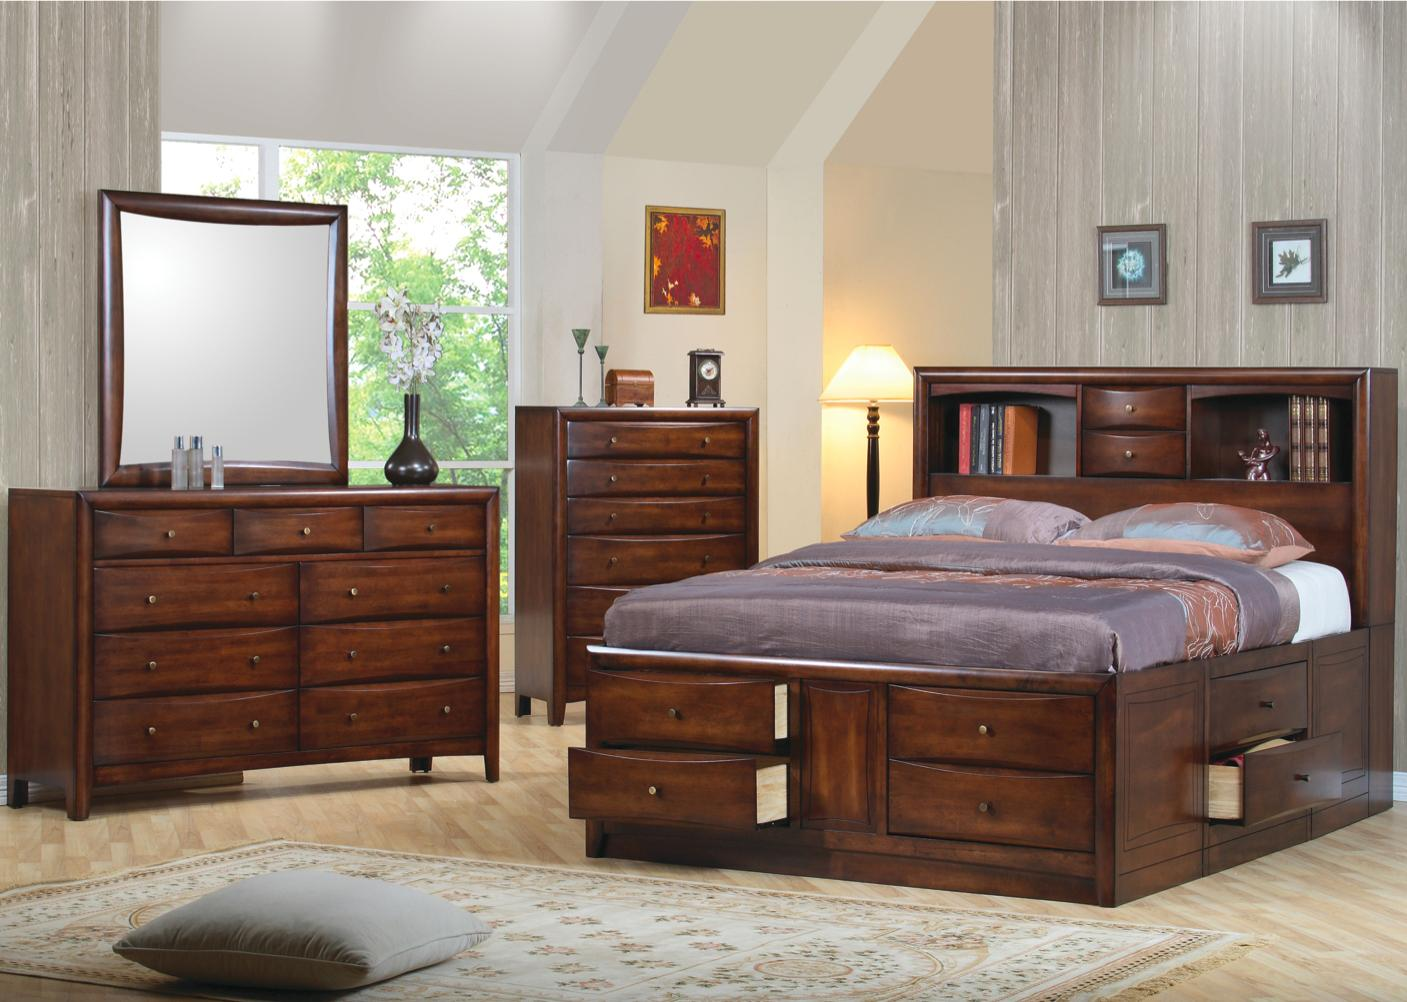 Coaster Hillary And Scottsdale 200609Q Queen Bookcase Bed | Northeast  Factory Direct | Bookcase Beds Cleveland, Eastlake, Westlake, Mentor,  Medina, Ohio